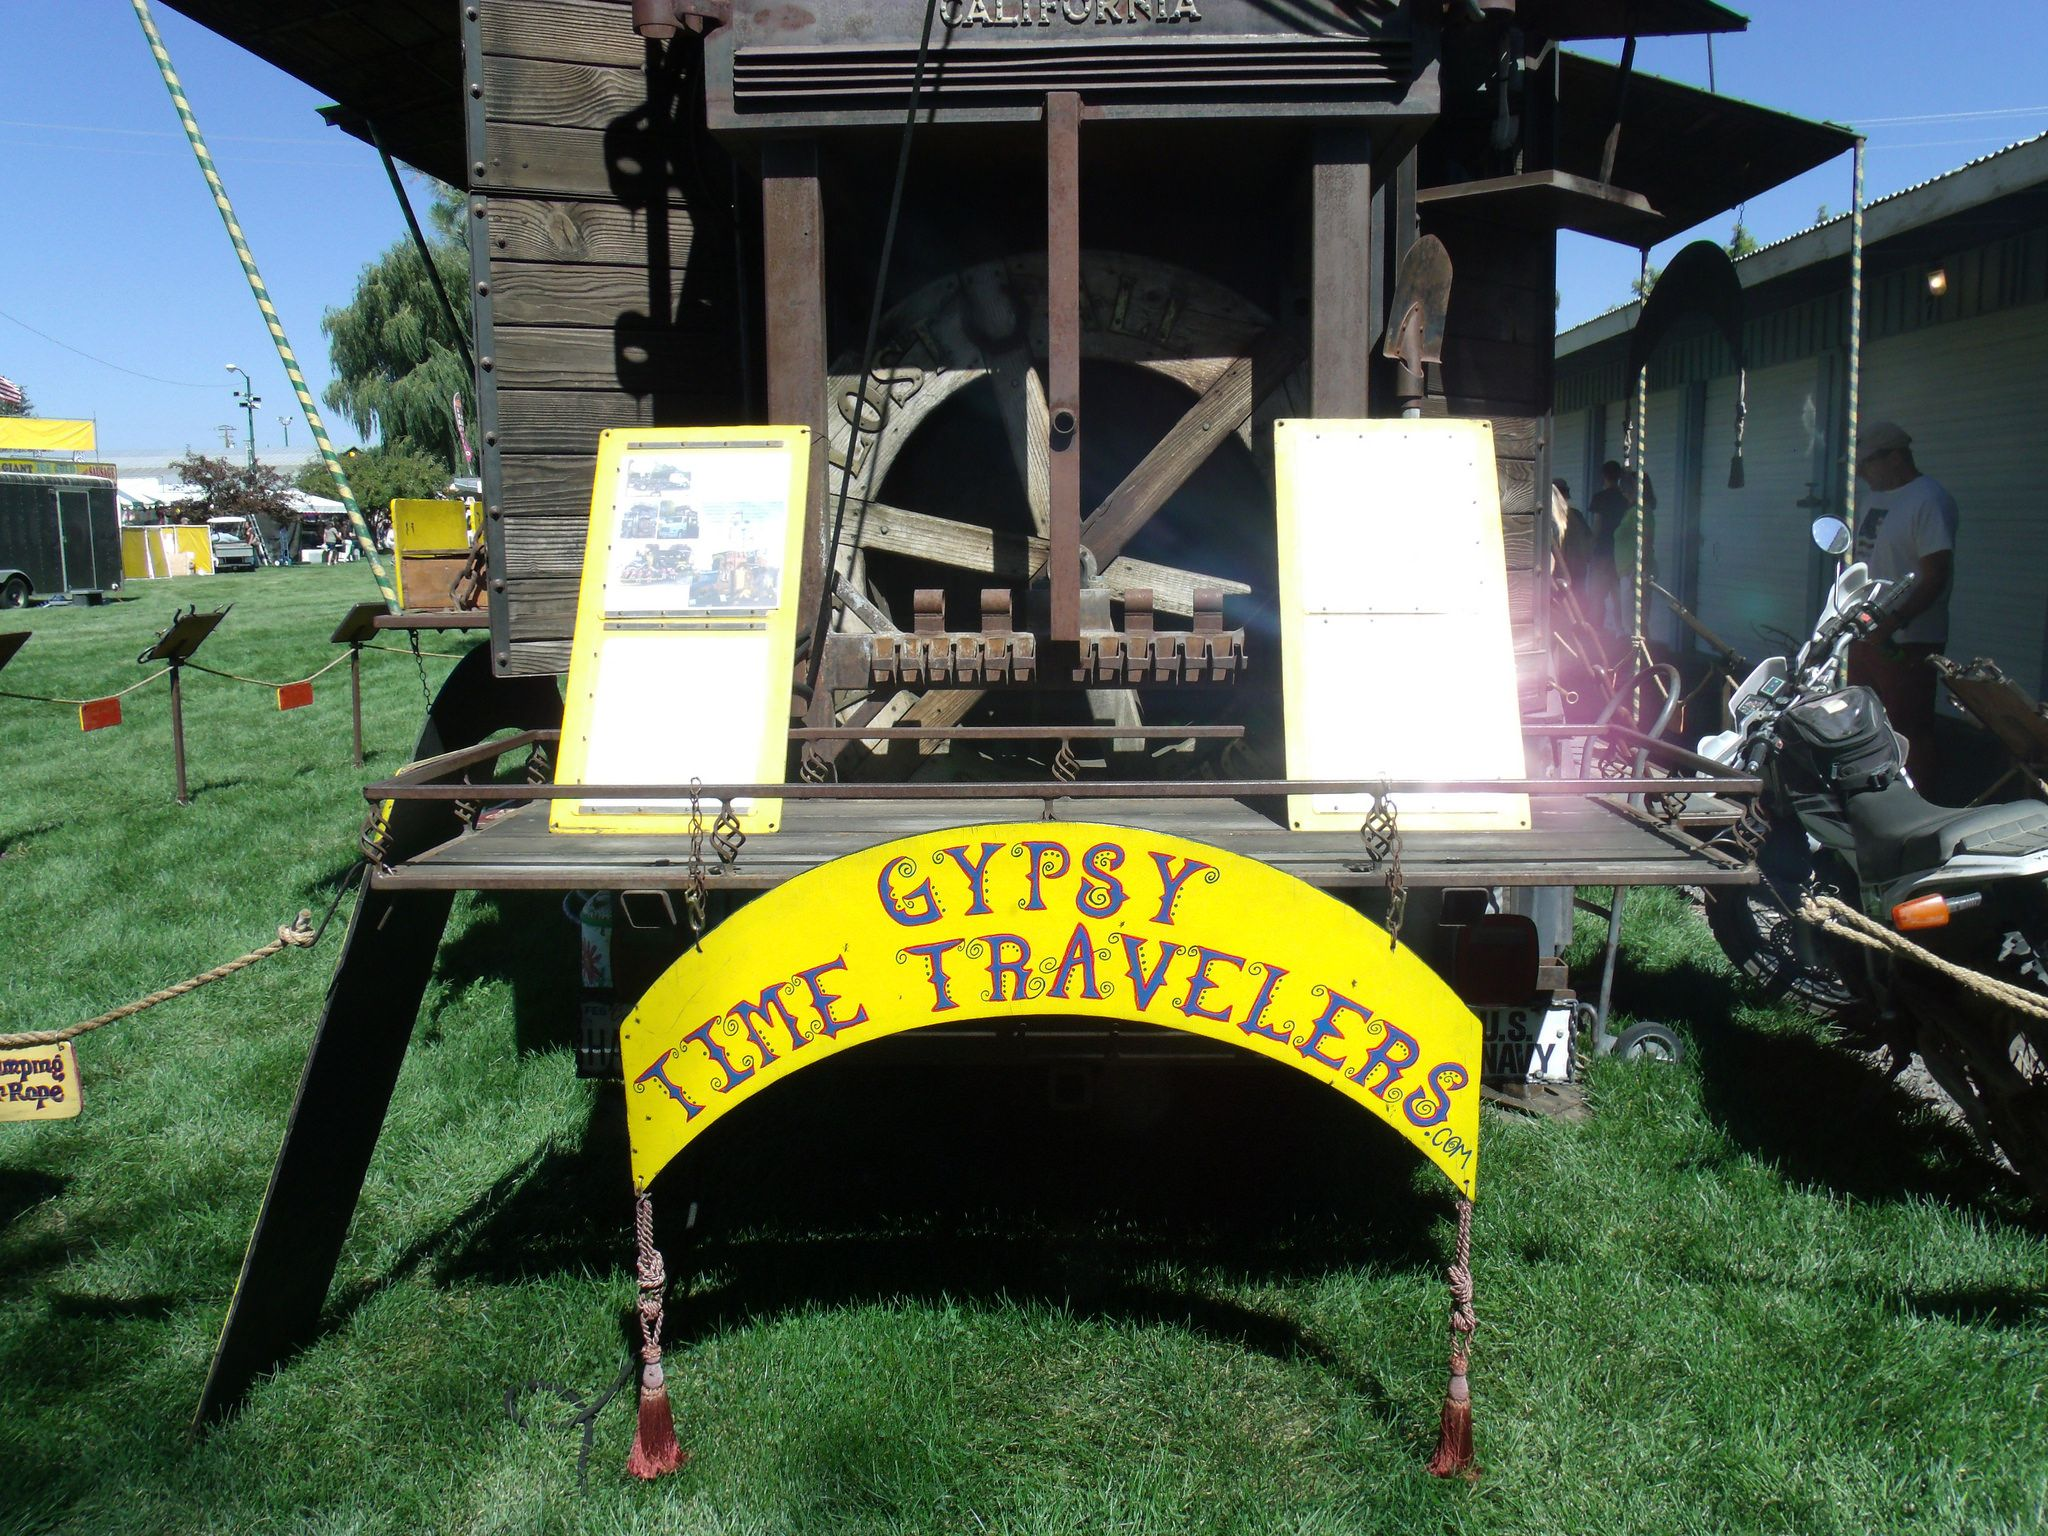 https://flic.kr/p/KCLsHK | The Gypsy Time Travelers 38 by Sherrie D. Larch | Gypsy Time Travelers'  Florence the Freightliner at the Tulelake/Butte Valley Fair in 2014, which they travel around the country sharing their folk stories.  For more information go to Gypsy Time Travelers' Facebook Page: www.facebook.com/GypsyTimeTravelers  My Facebook Artist Page: www.facebook.com/sherriedlarch/